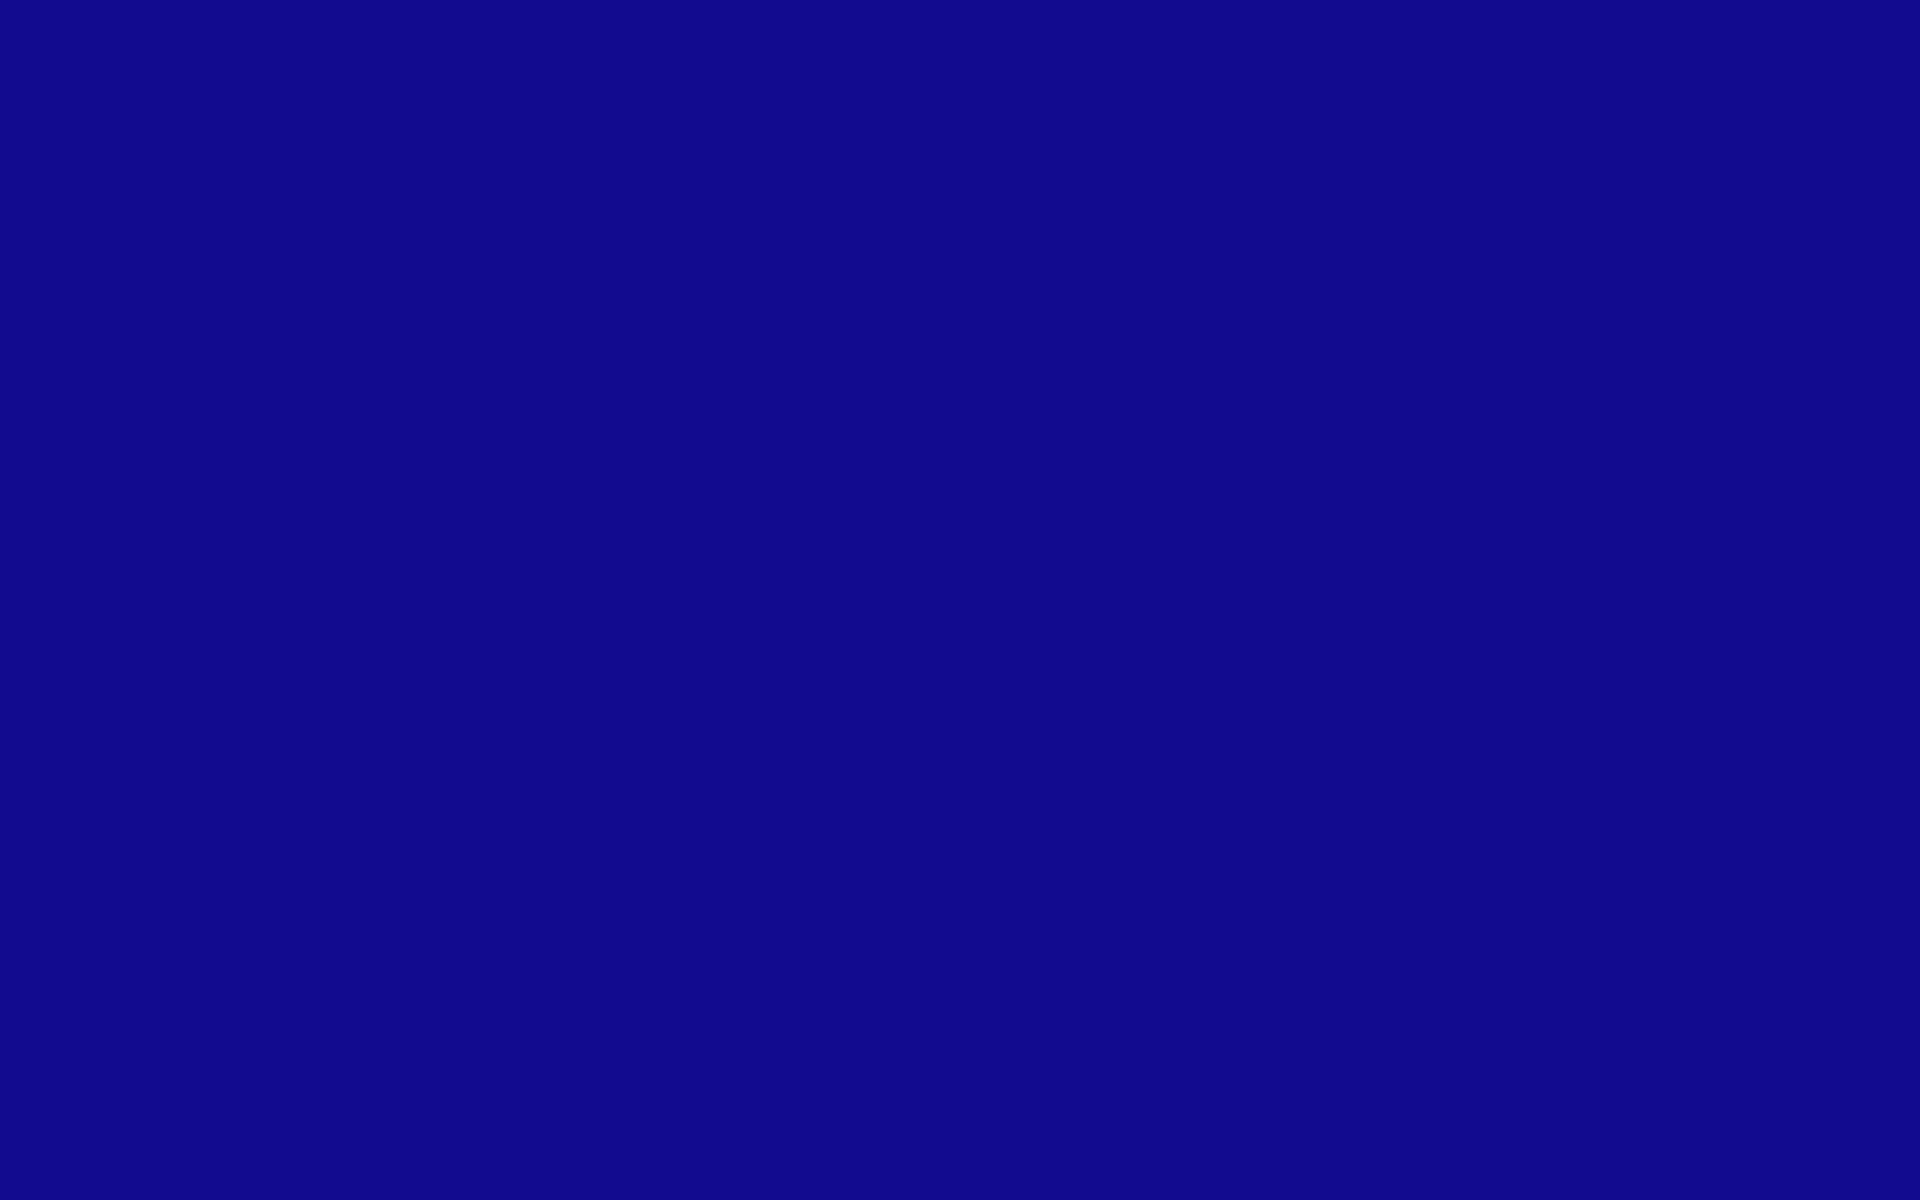 1920x1200 Ultramarine Solid Color Background